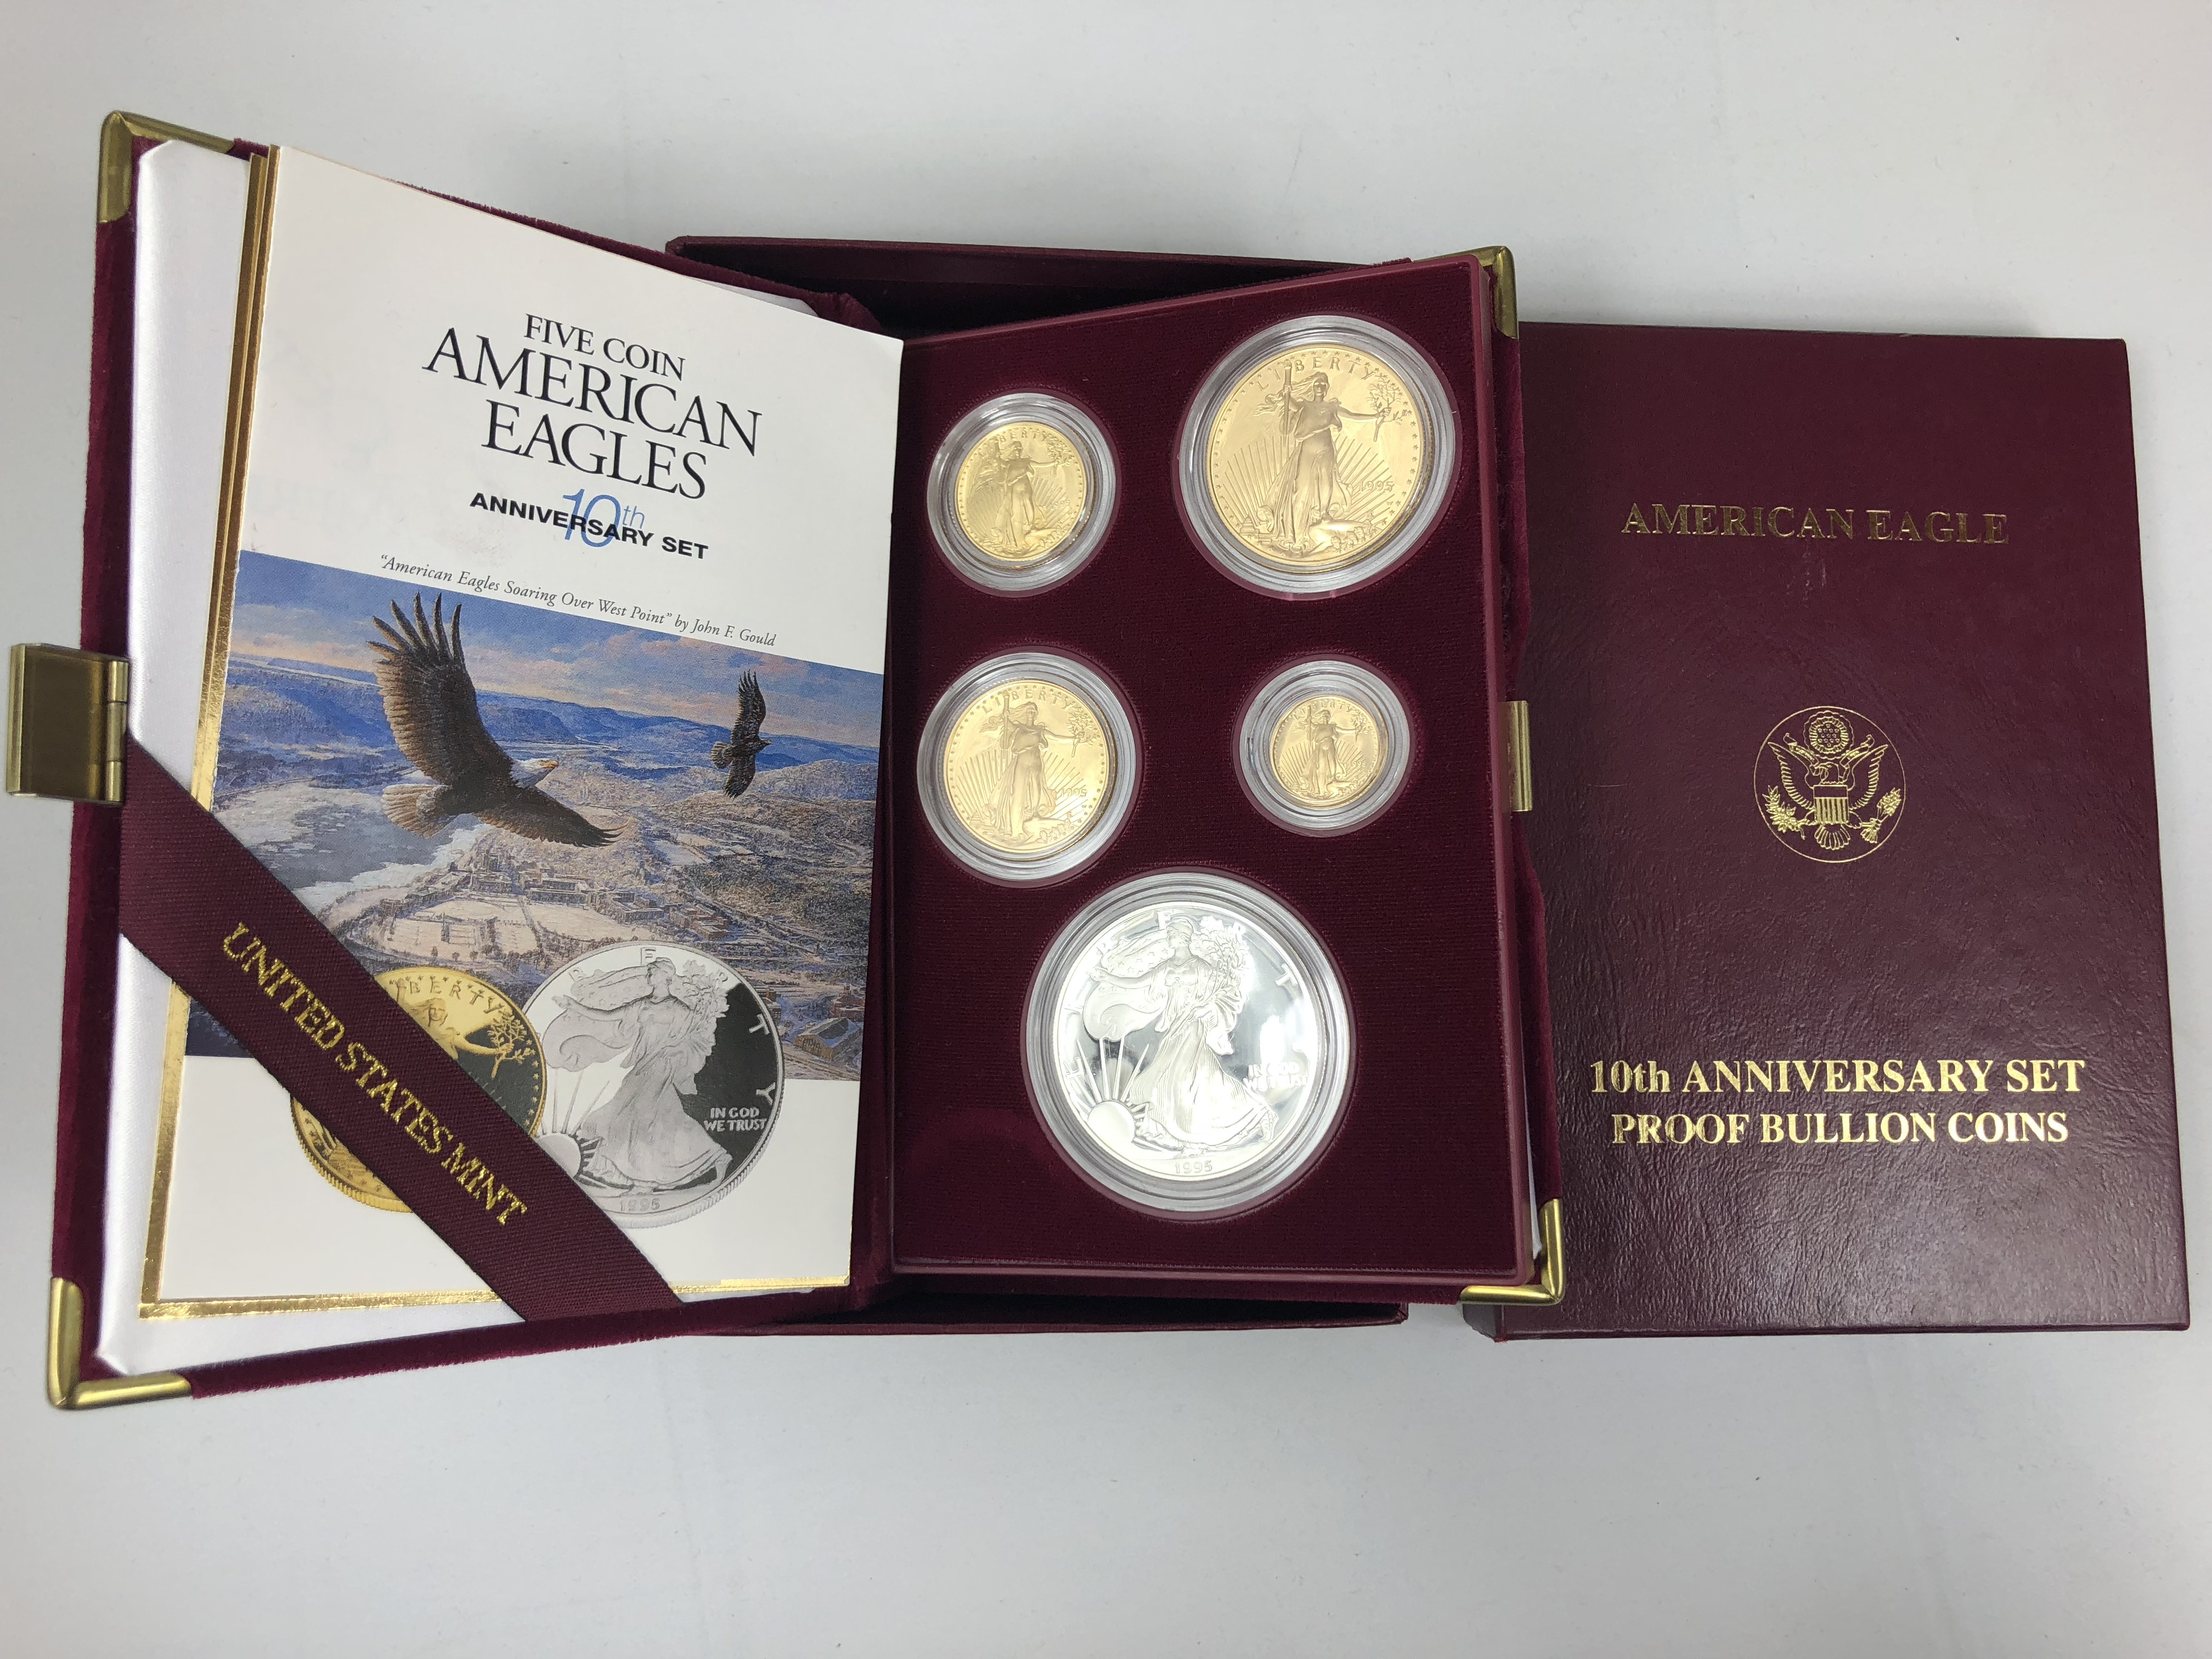 10th Anniversary Set Proof Bullion Coins American Eagle with COA